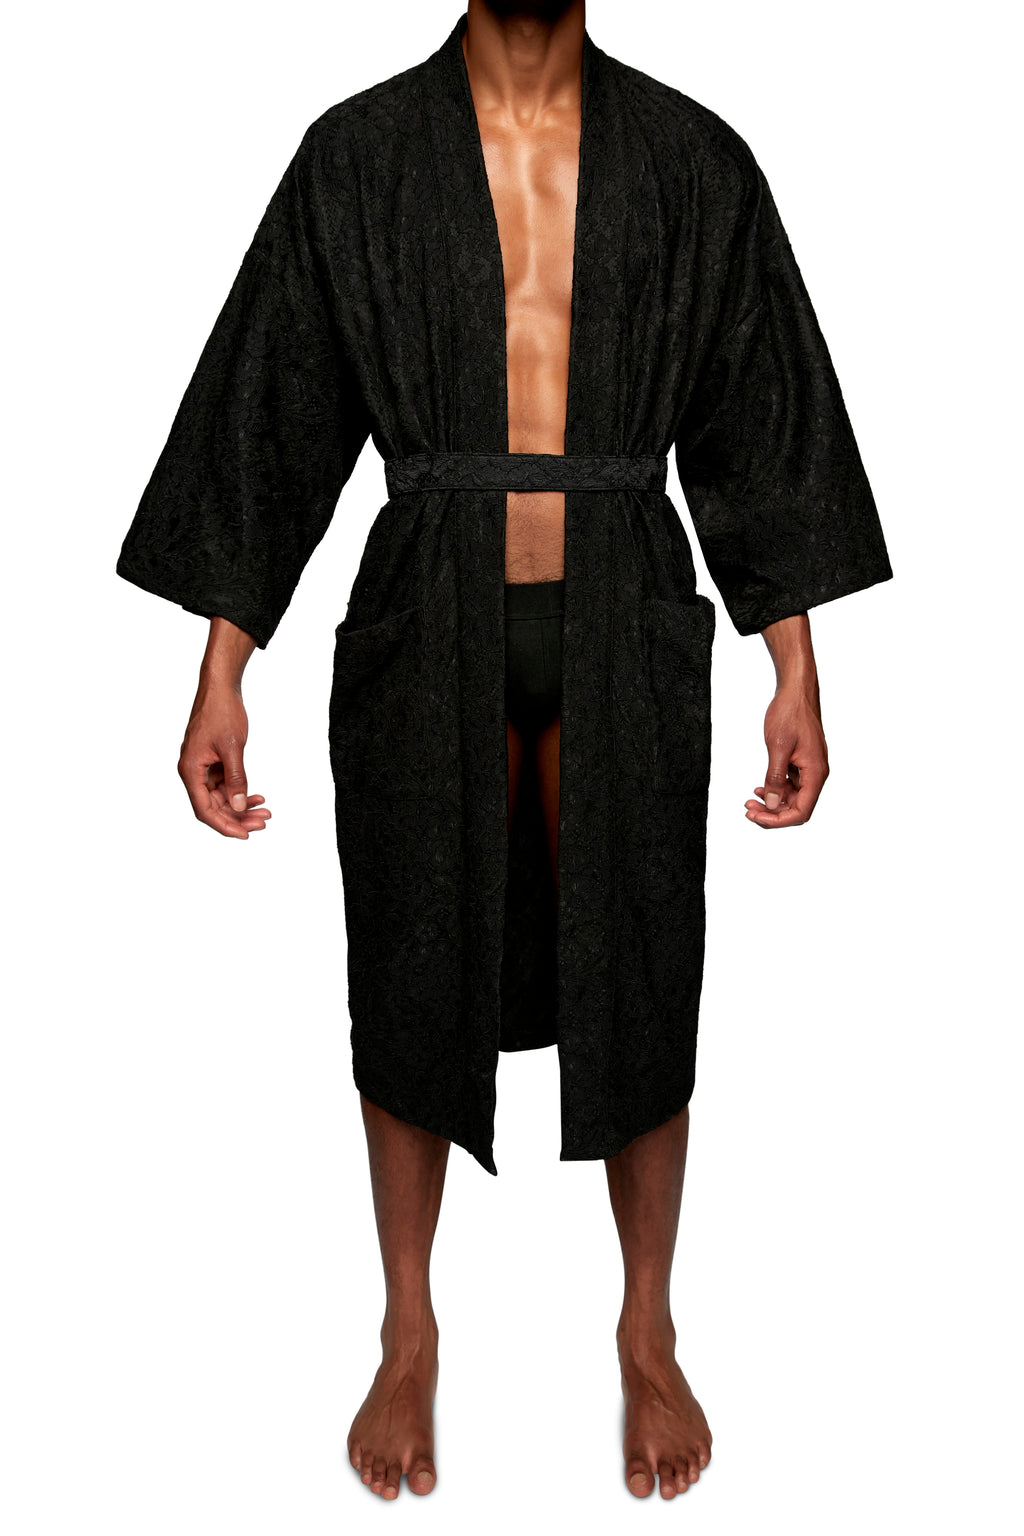 FULL LENGTH ROBE in LACE KNIT - MENAGERIE Intimates MENS Lingerie